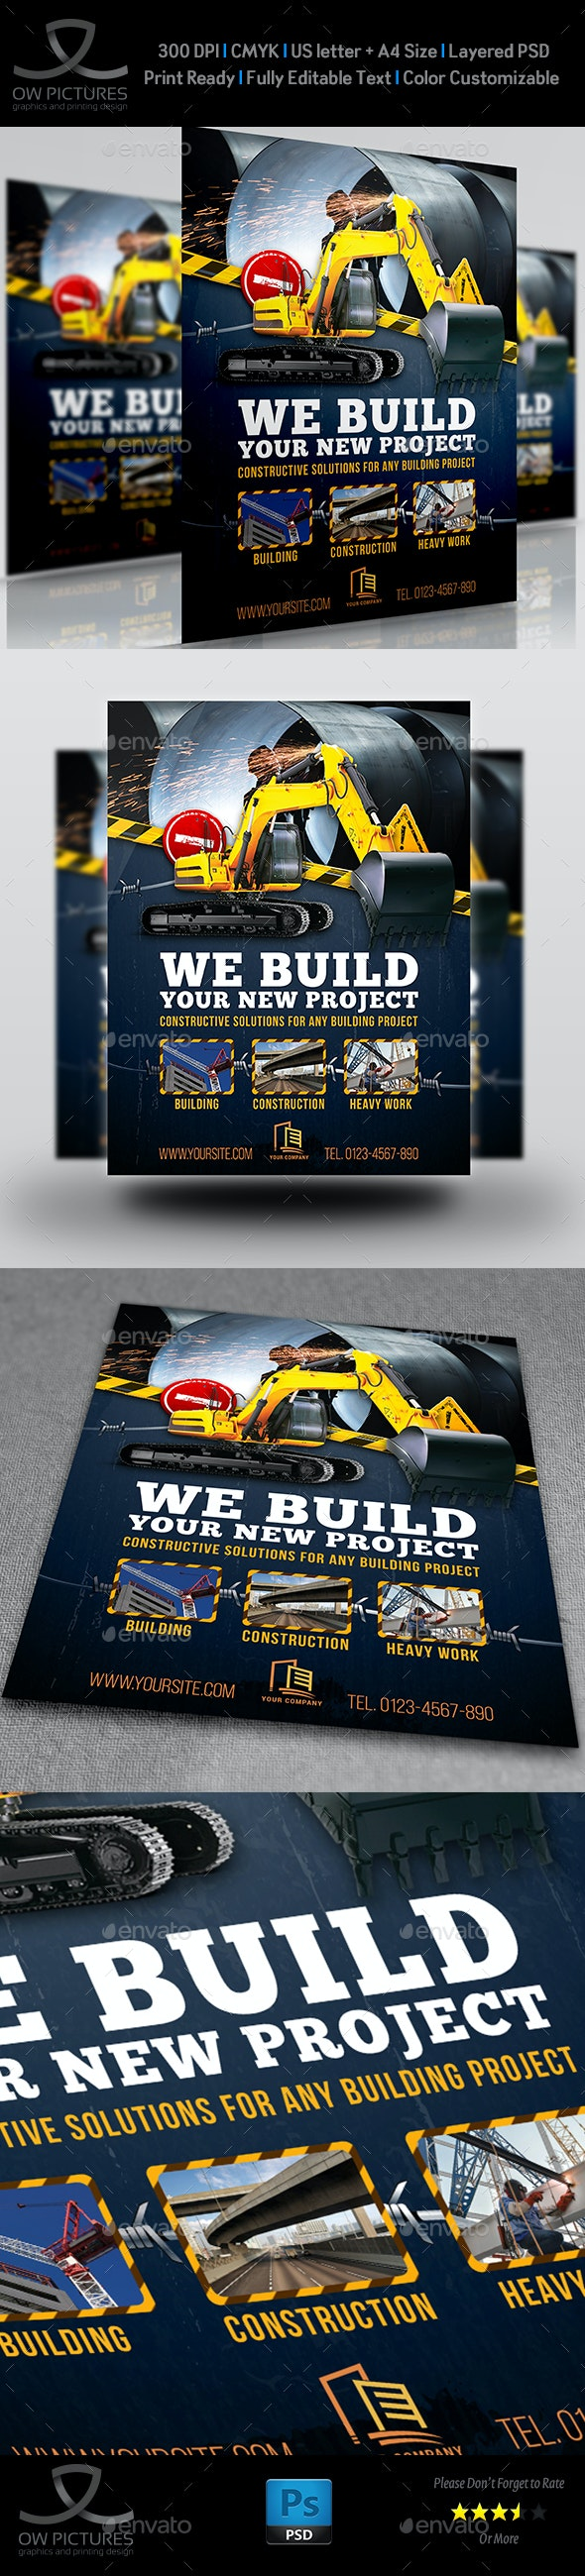 Construction Business Flyer Template Vol.7 - Corporate Flyers